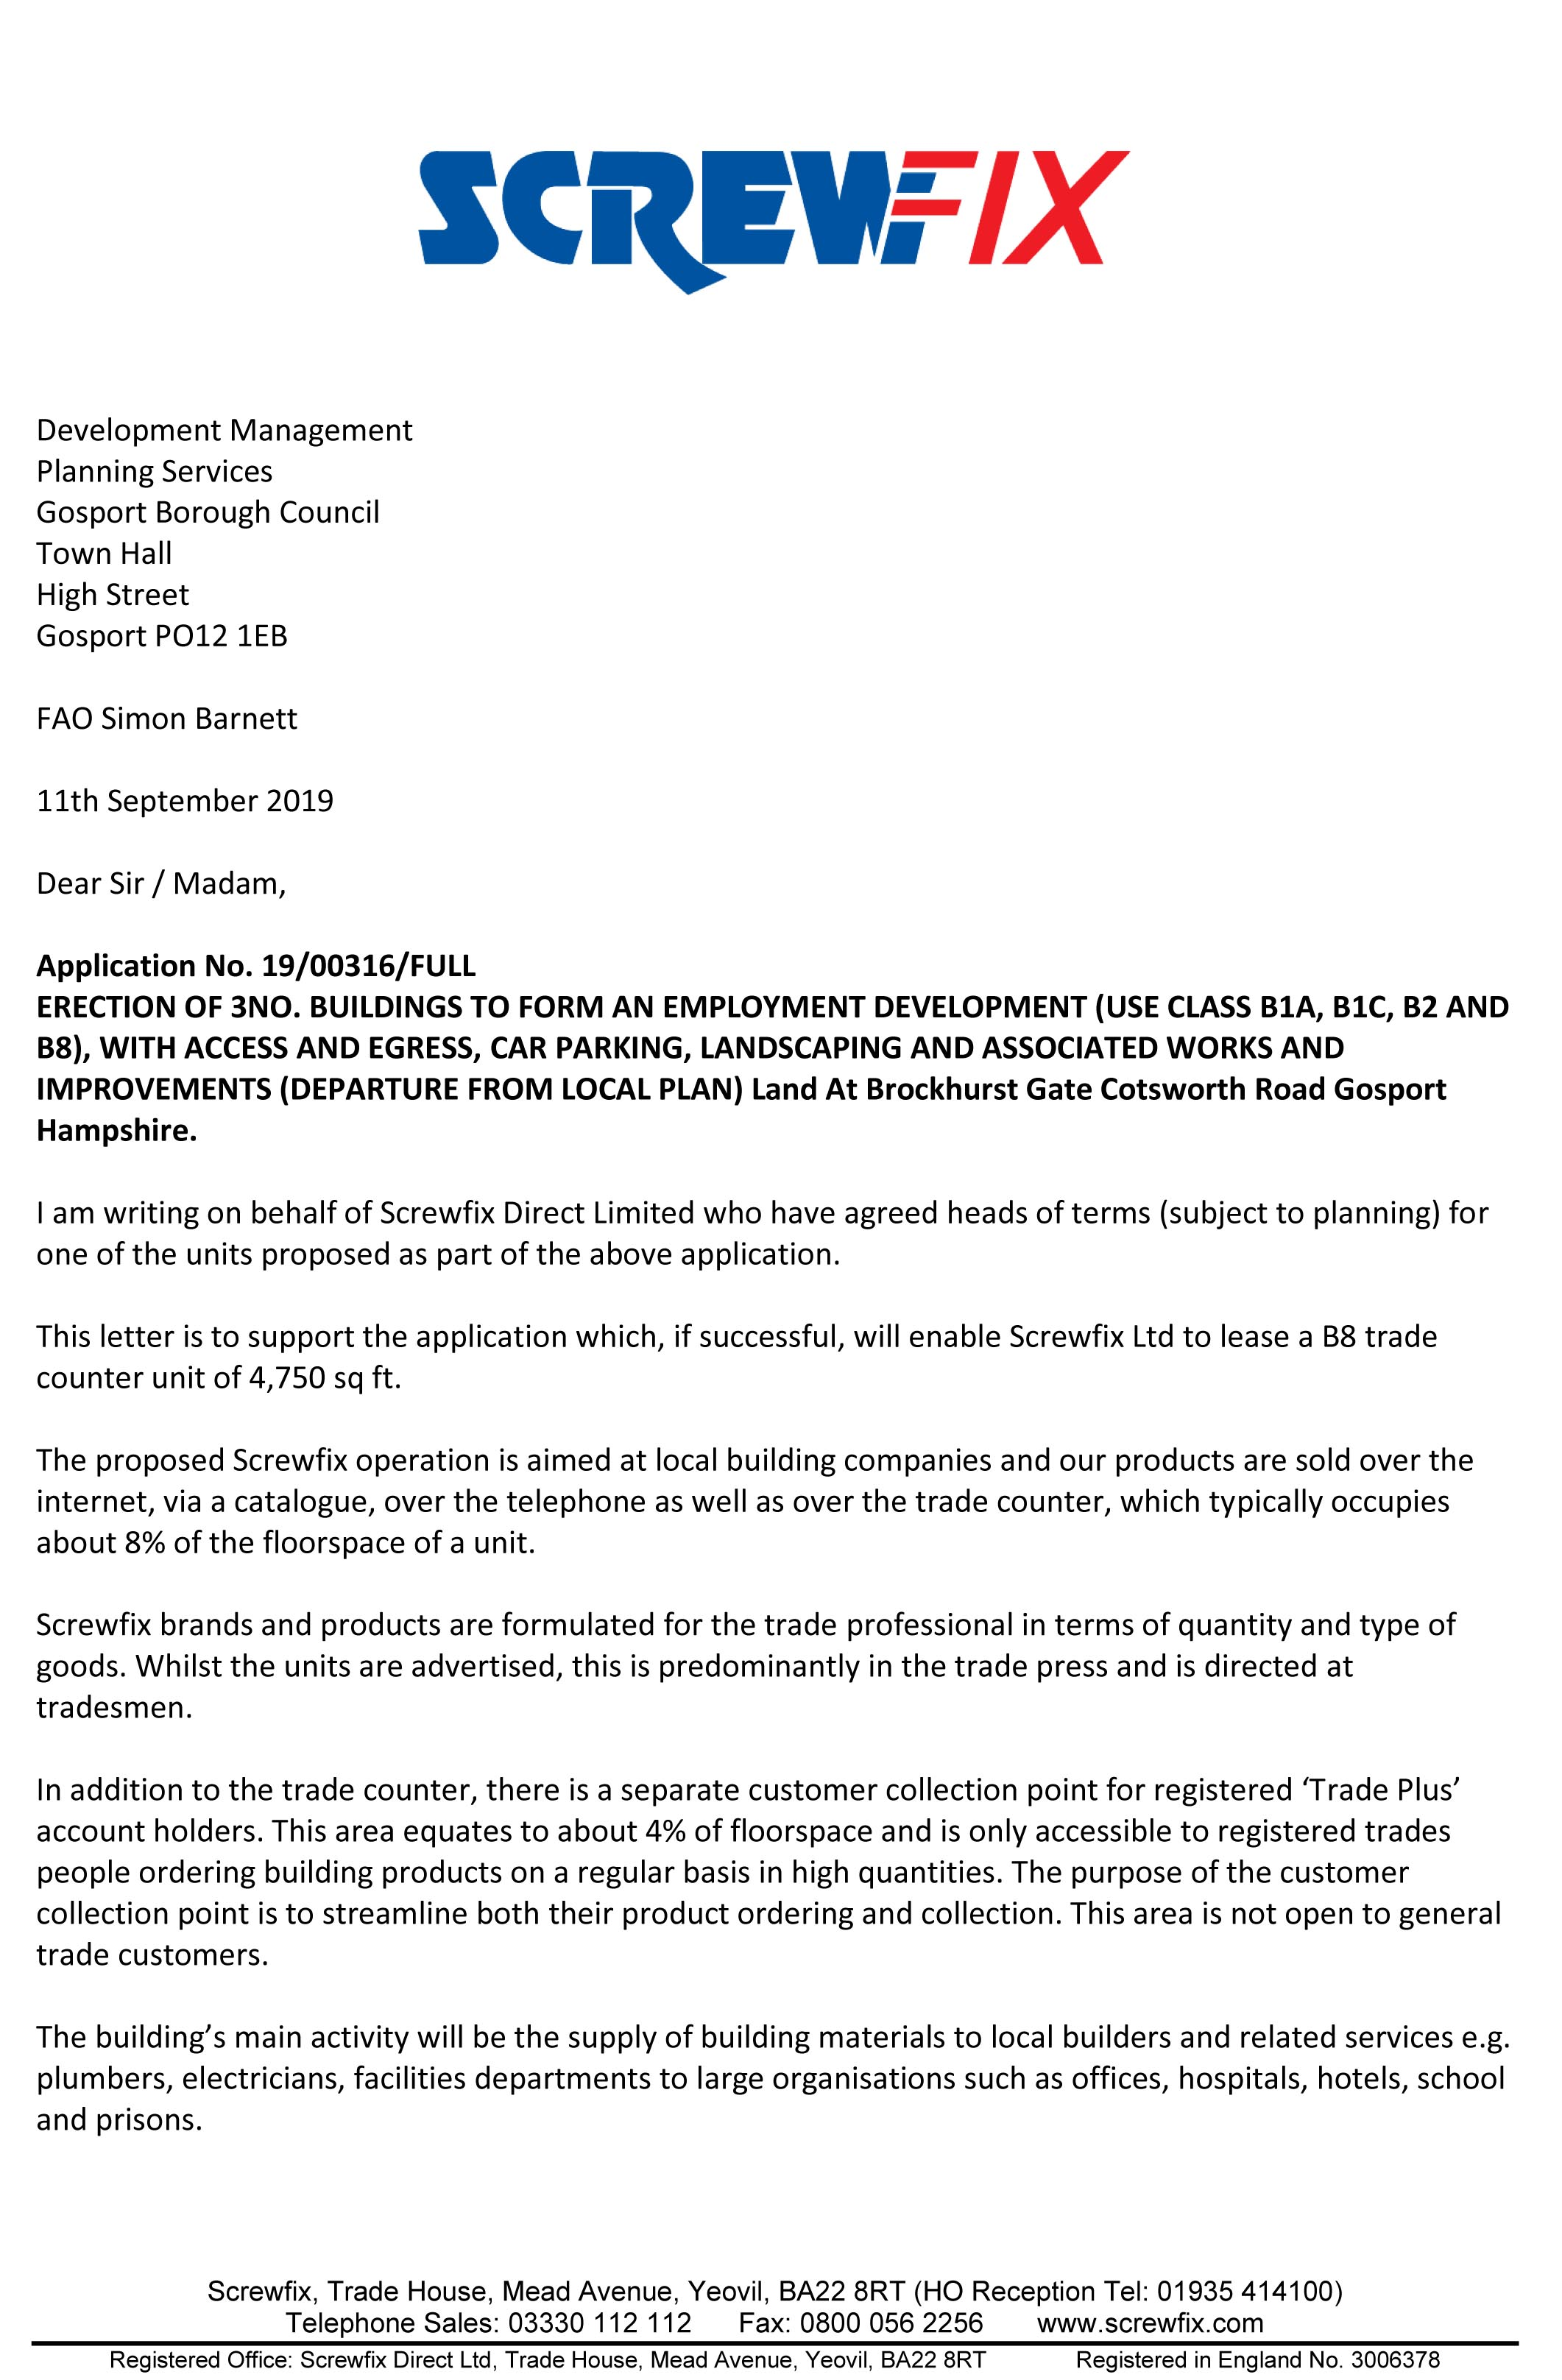 Screwfix Planning Support Letter-page 1